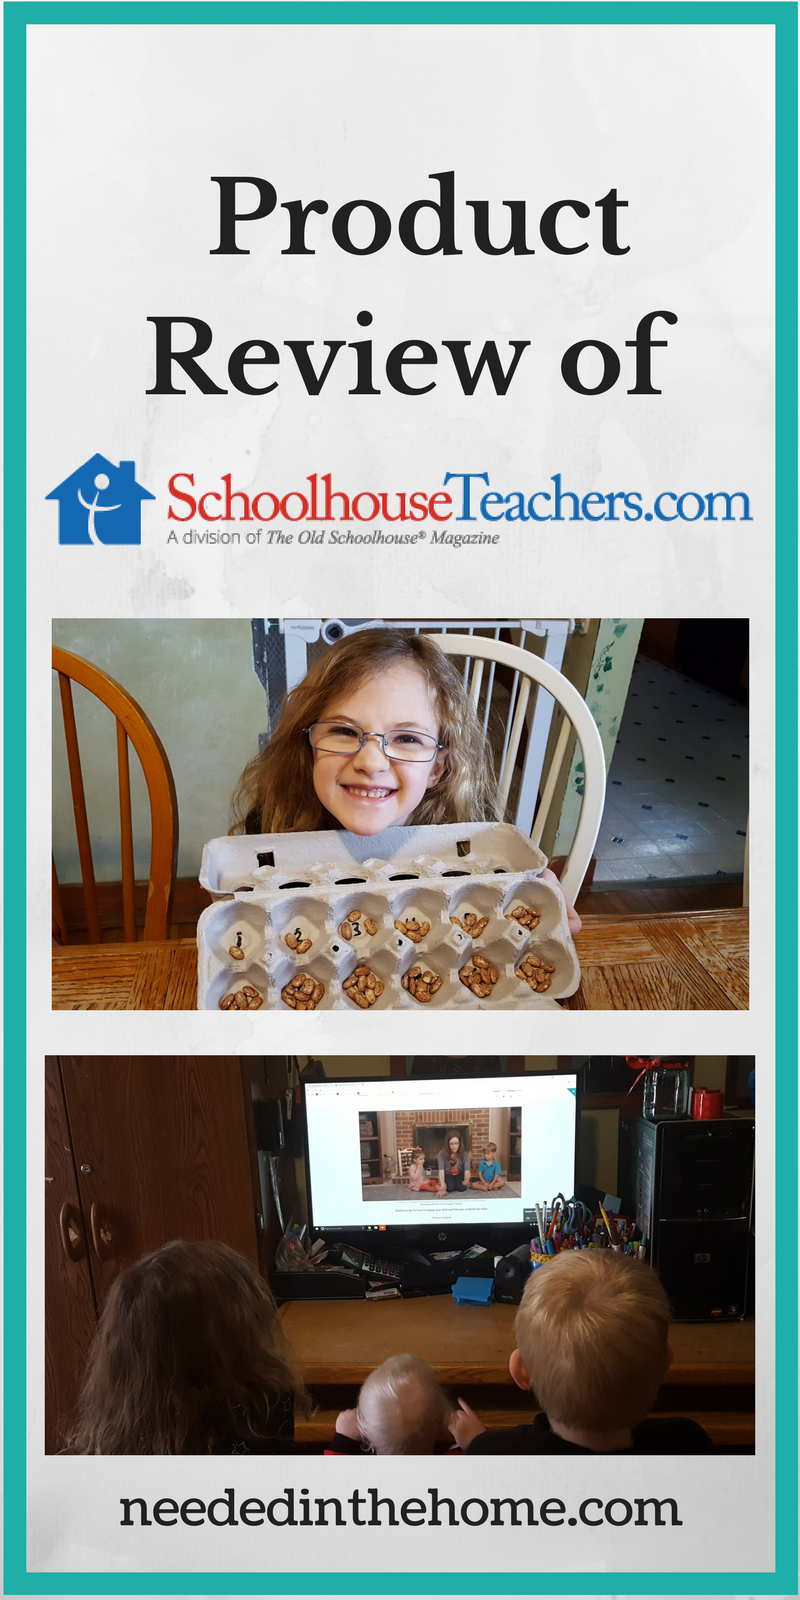 girl holding egg carton of counting beans three small children watch computer monitor Product Review of SchoolhouseTeachers.com by neededinthehome.com